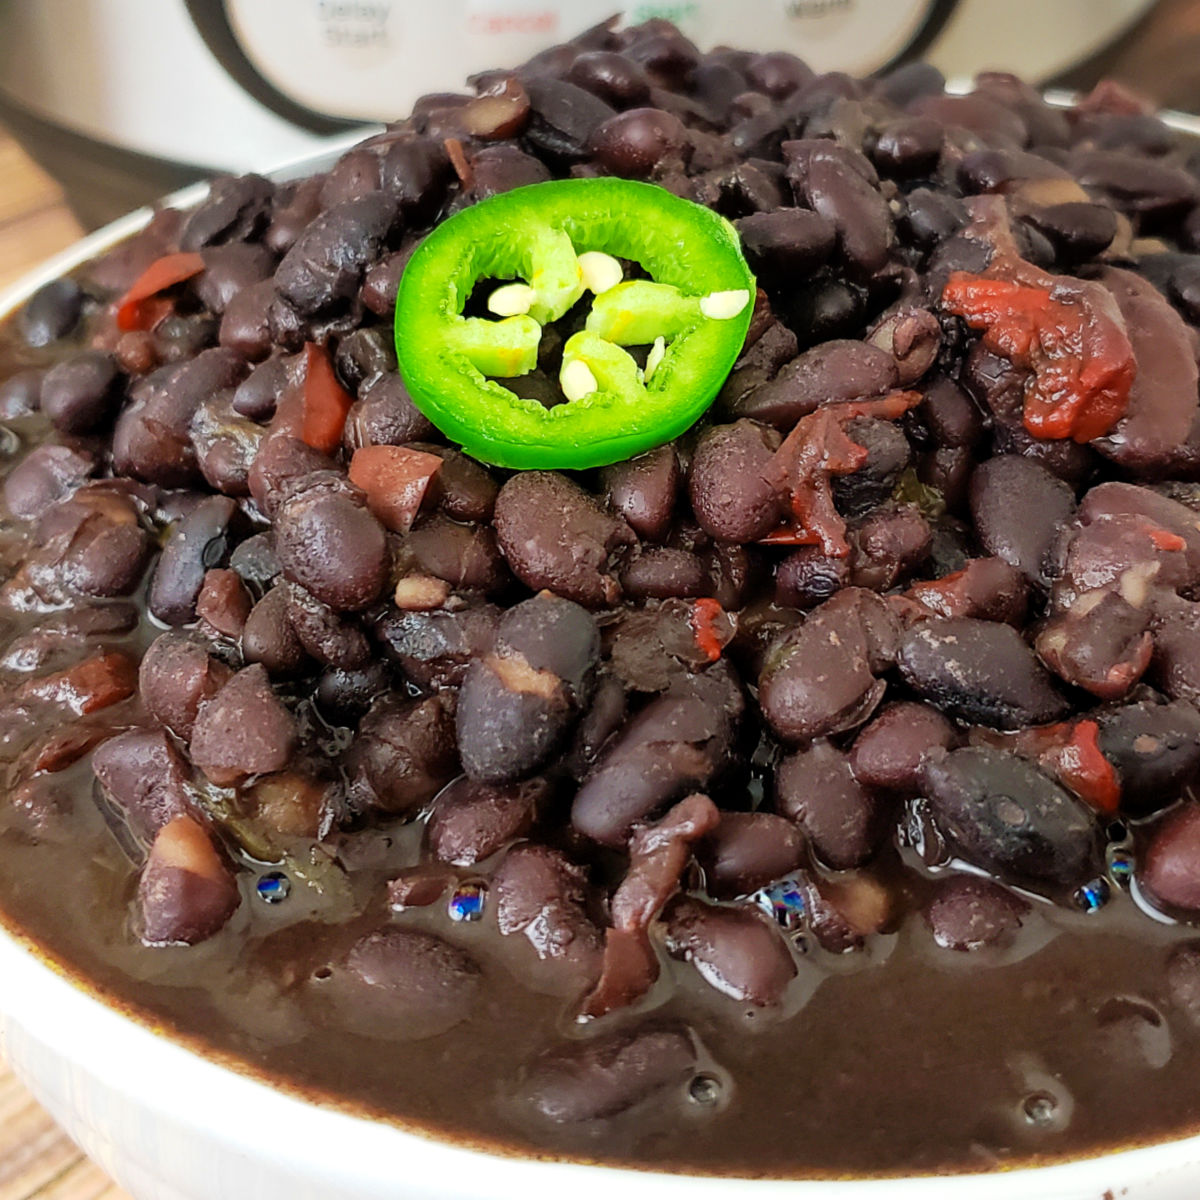 Black beans garnished with a jalapeno slice in a bowl with Instant Pot in background.